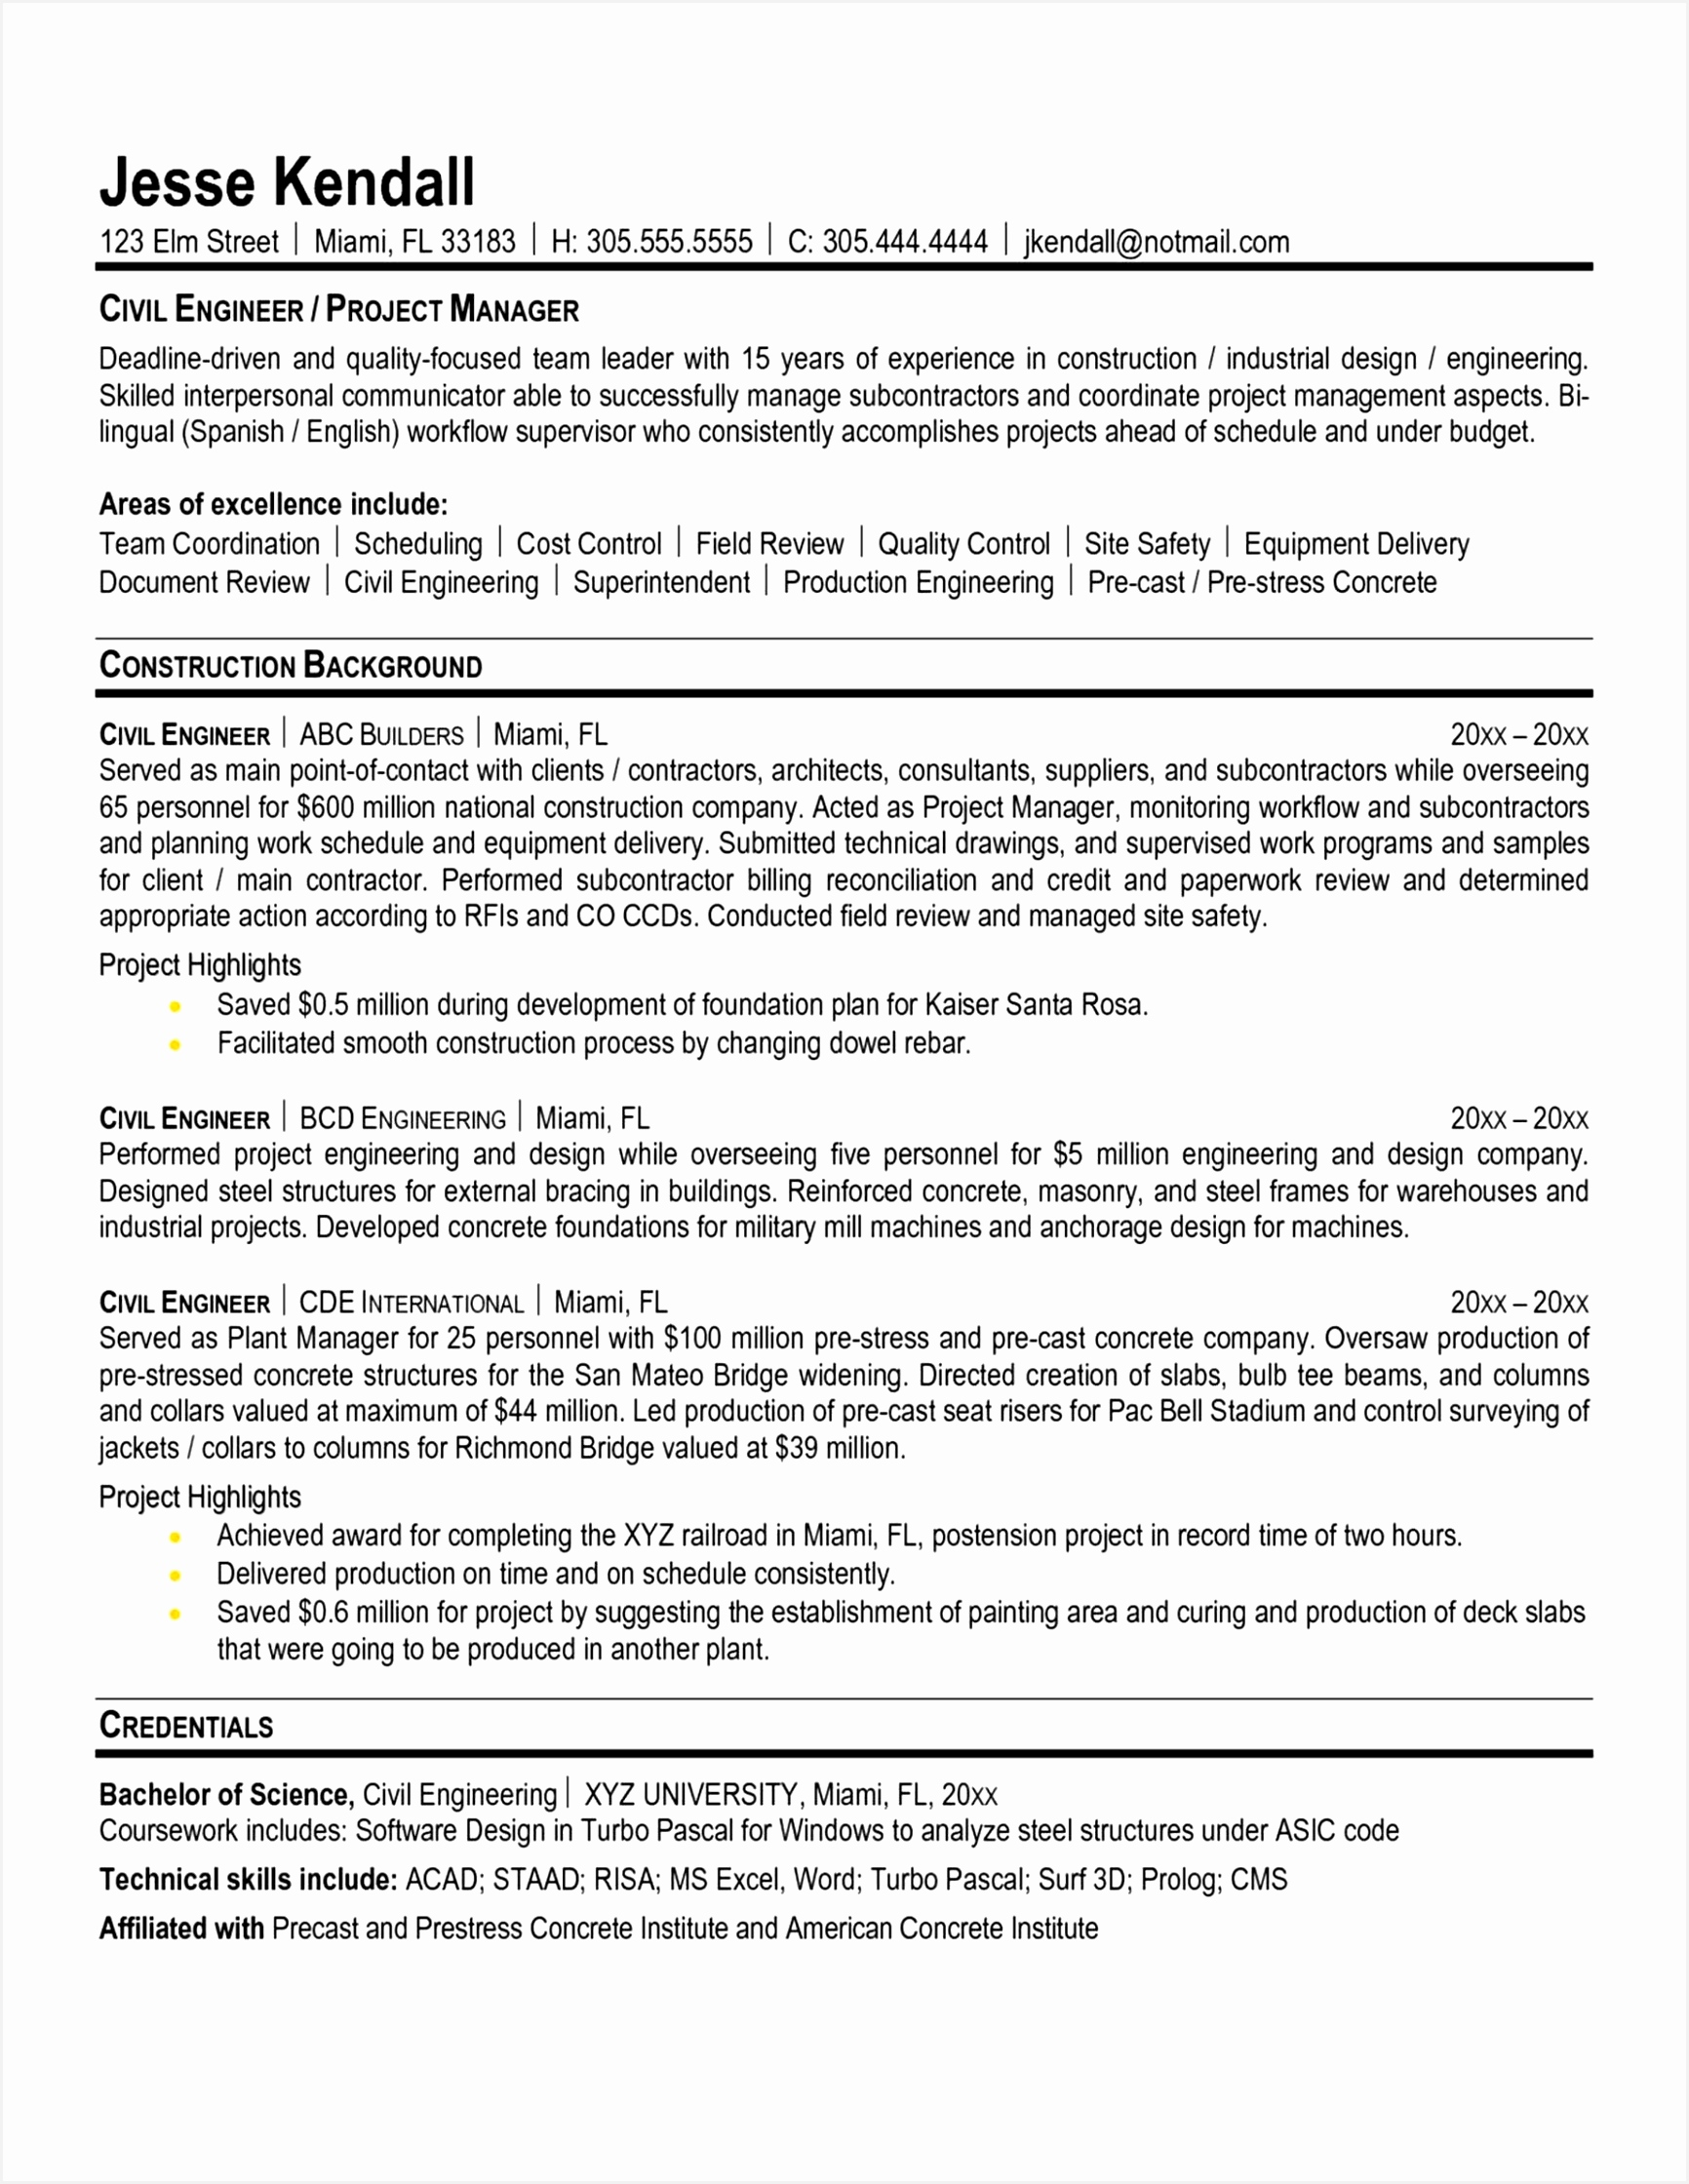 Contract Stress Engineer Sample Resume Nysfz Unique Quality assurance Director Resume — Resumes Project Of Contract Stress Engineer Sample Resume Ooj3g Luxury Resume Examples Mechanical Engineer Archives Margorochelle